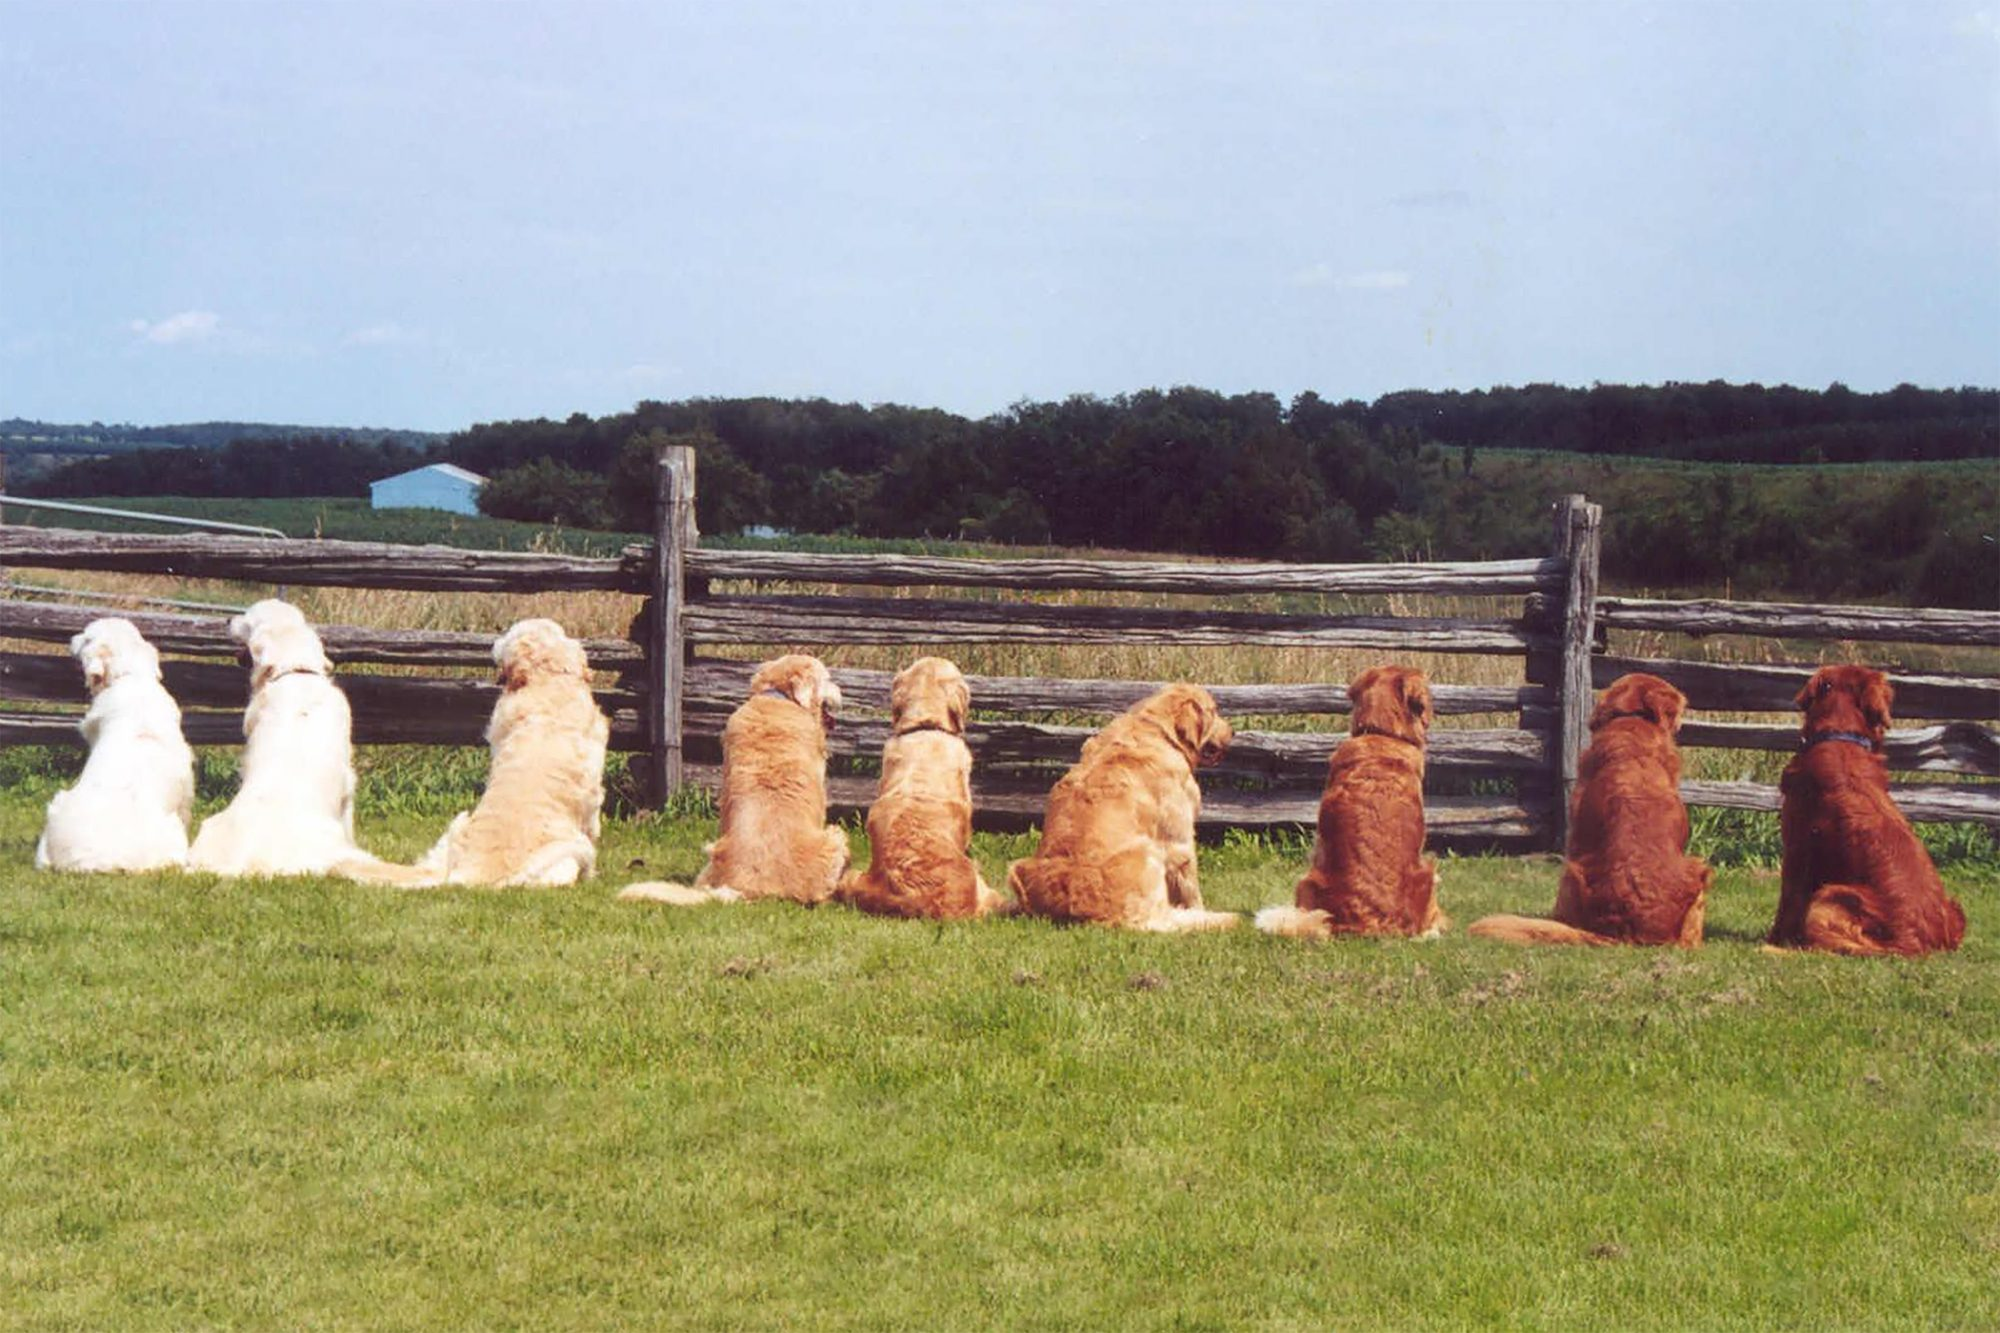 Row of Golden retrievers in various colors